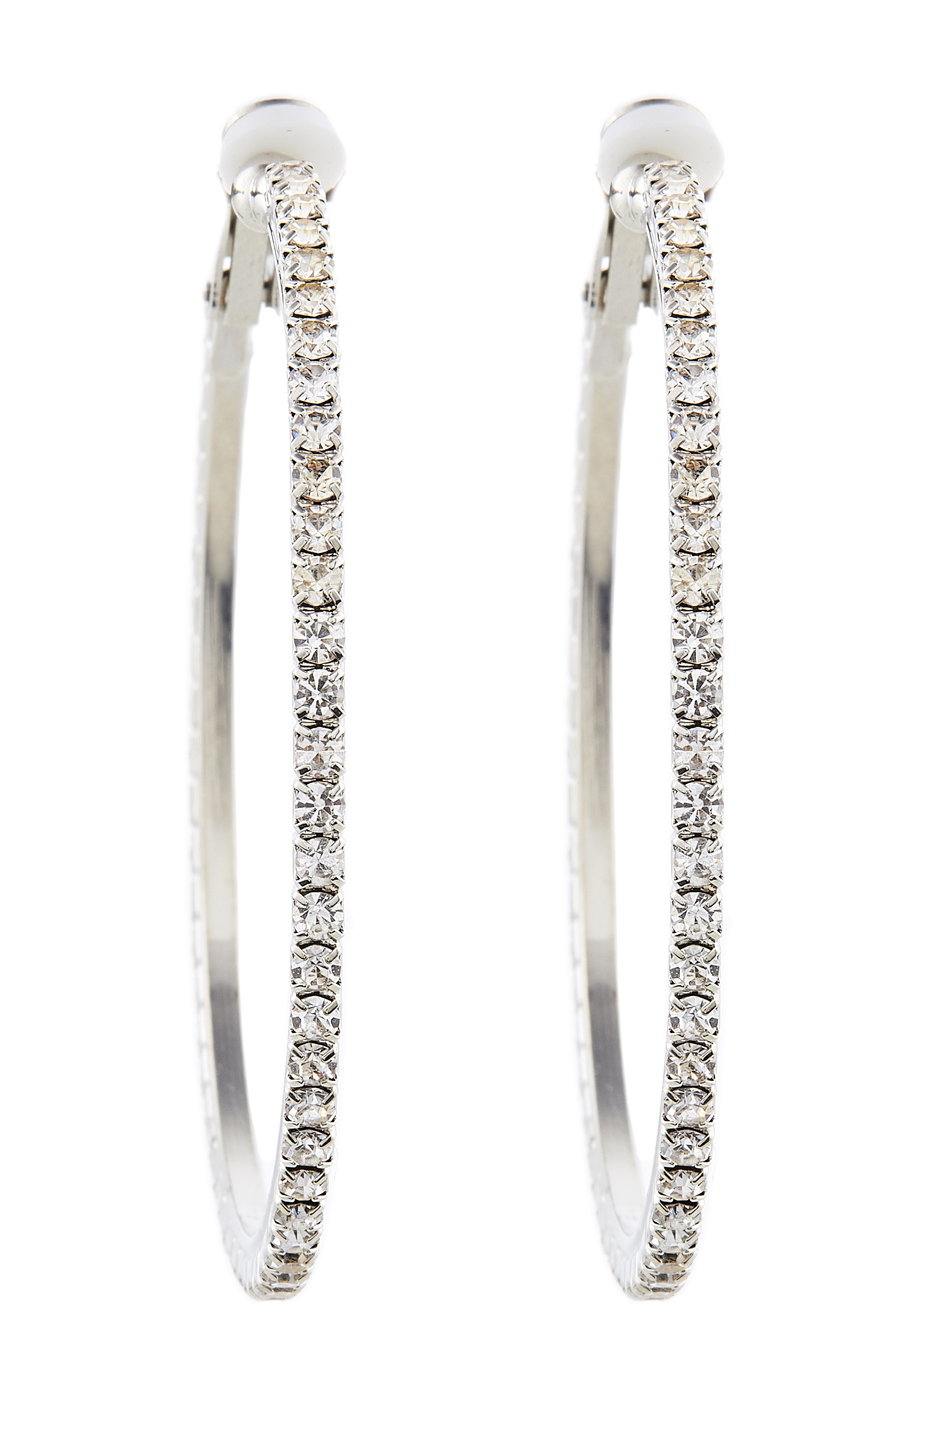 Clip On Earrings - Karina S - silver hoops with clear crystals